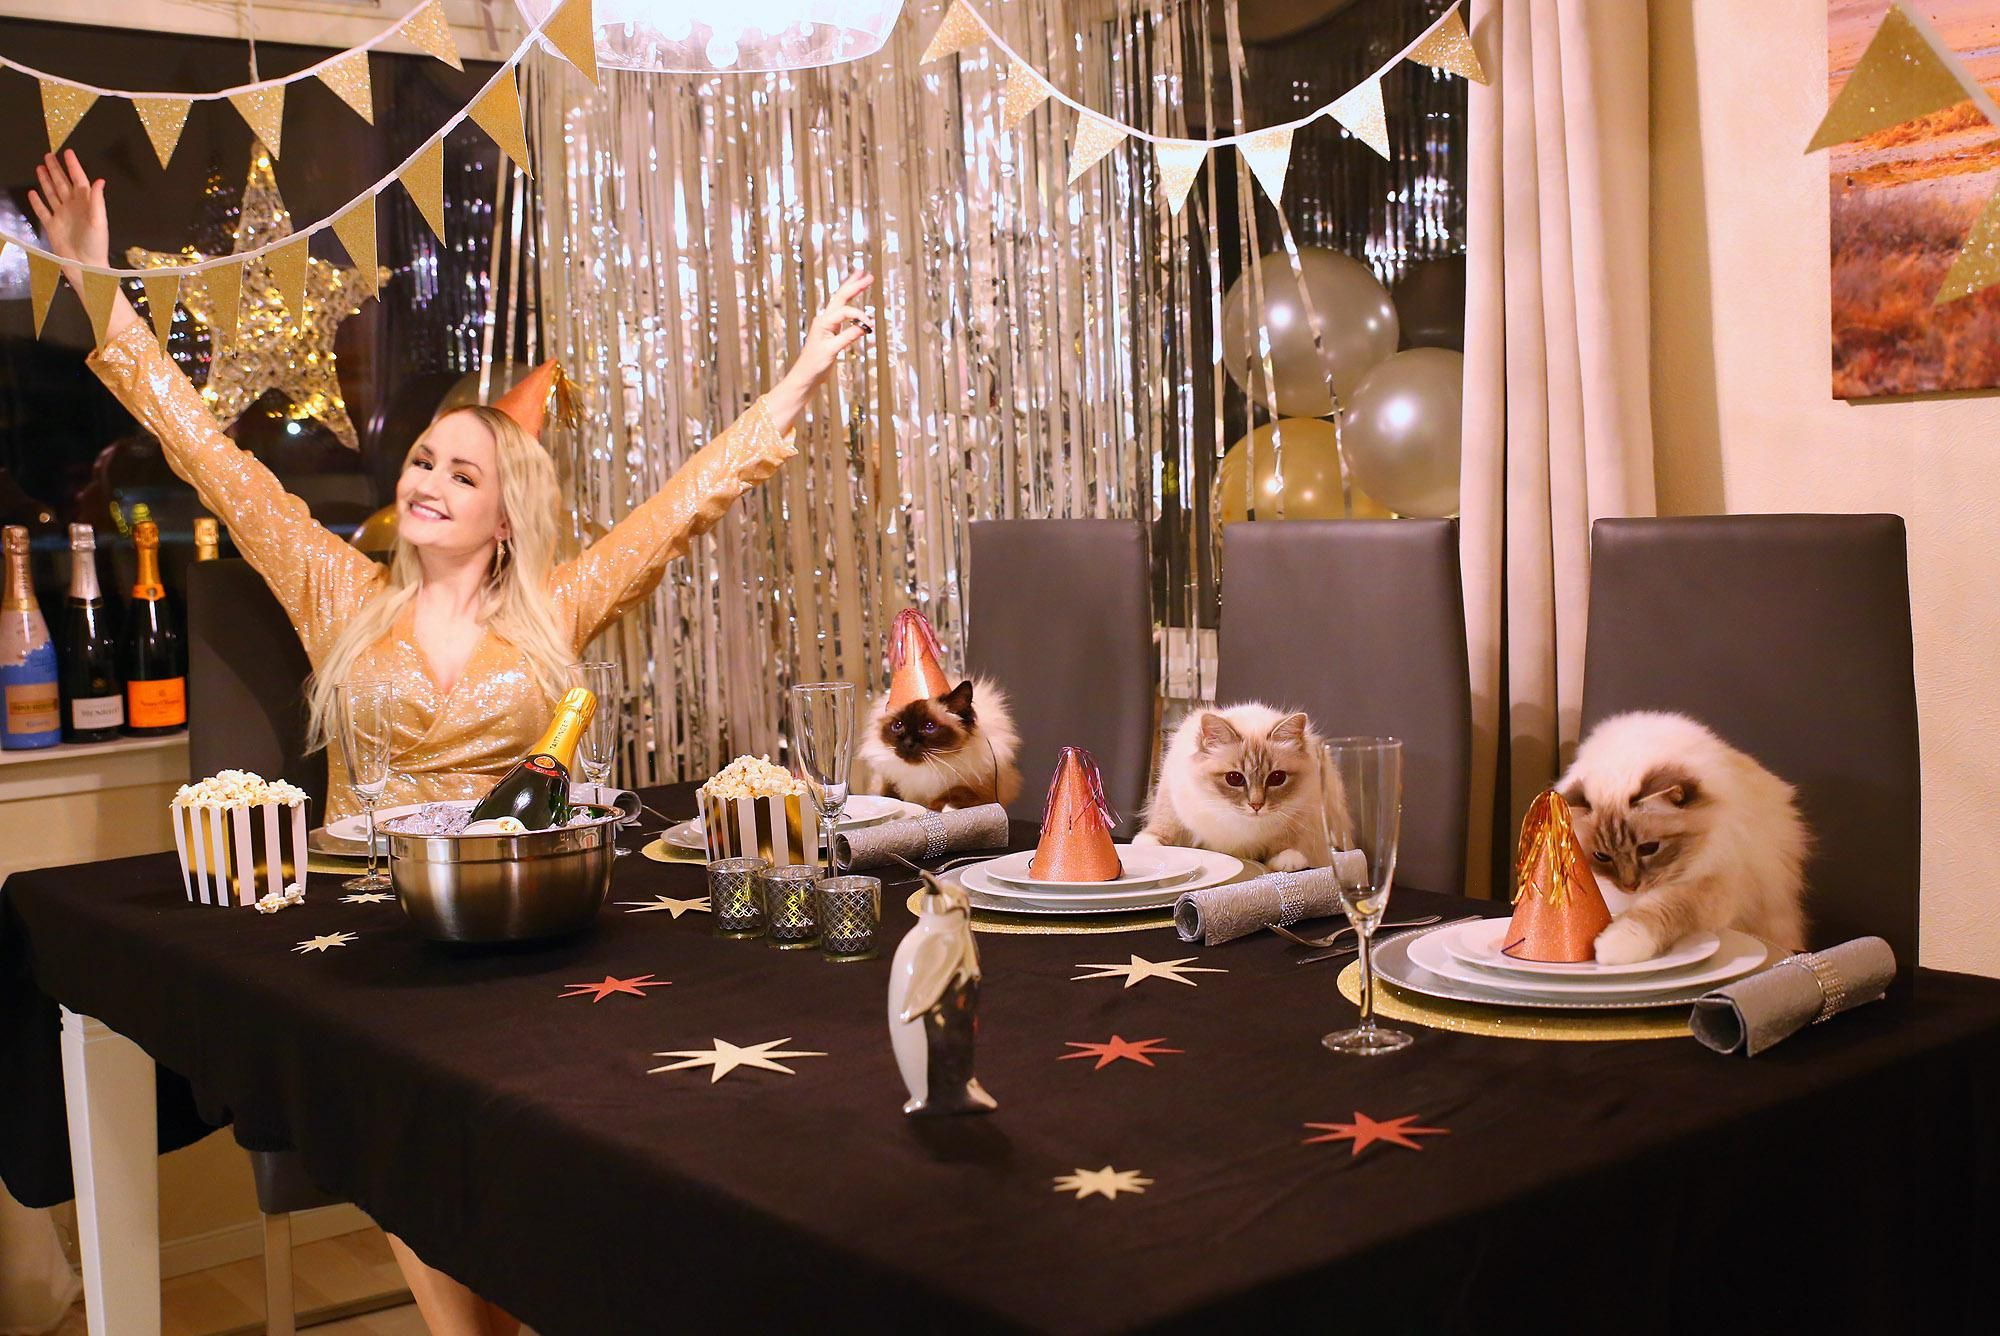 My CATastrophic New Year's party